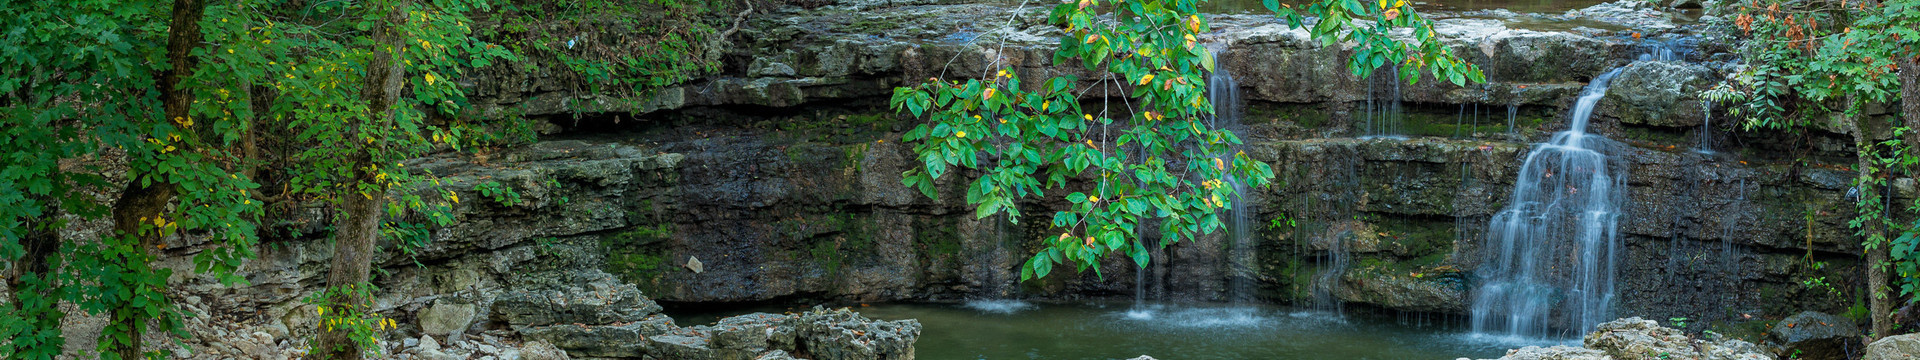 Scenic view of small waterfall